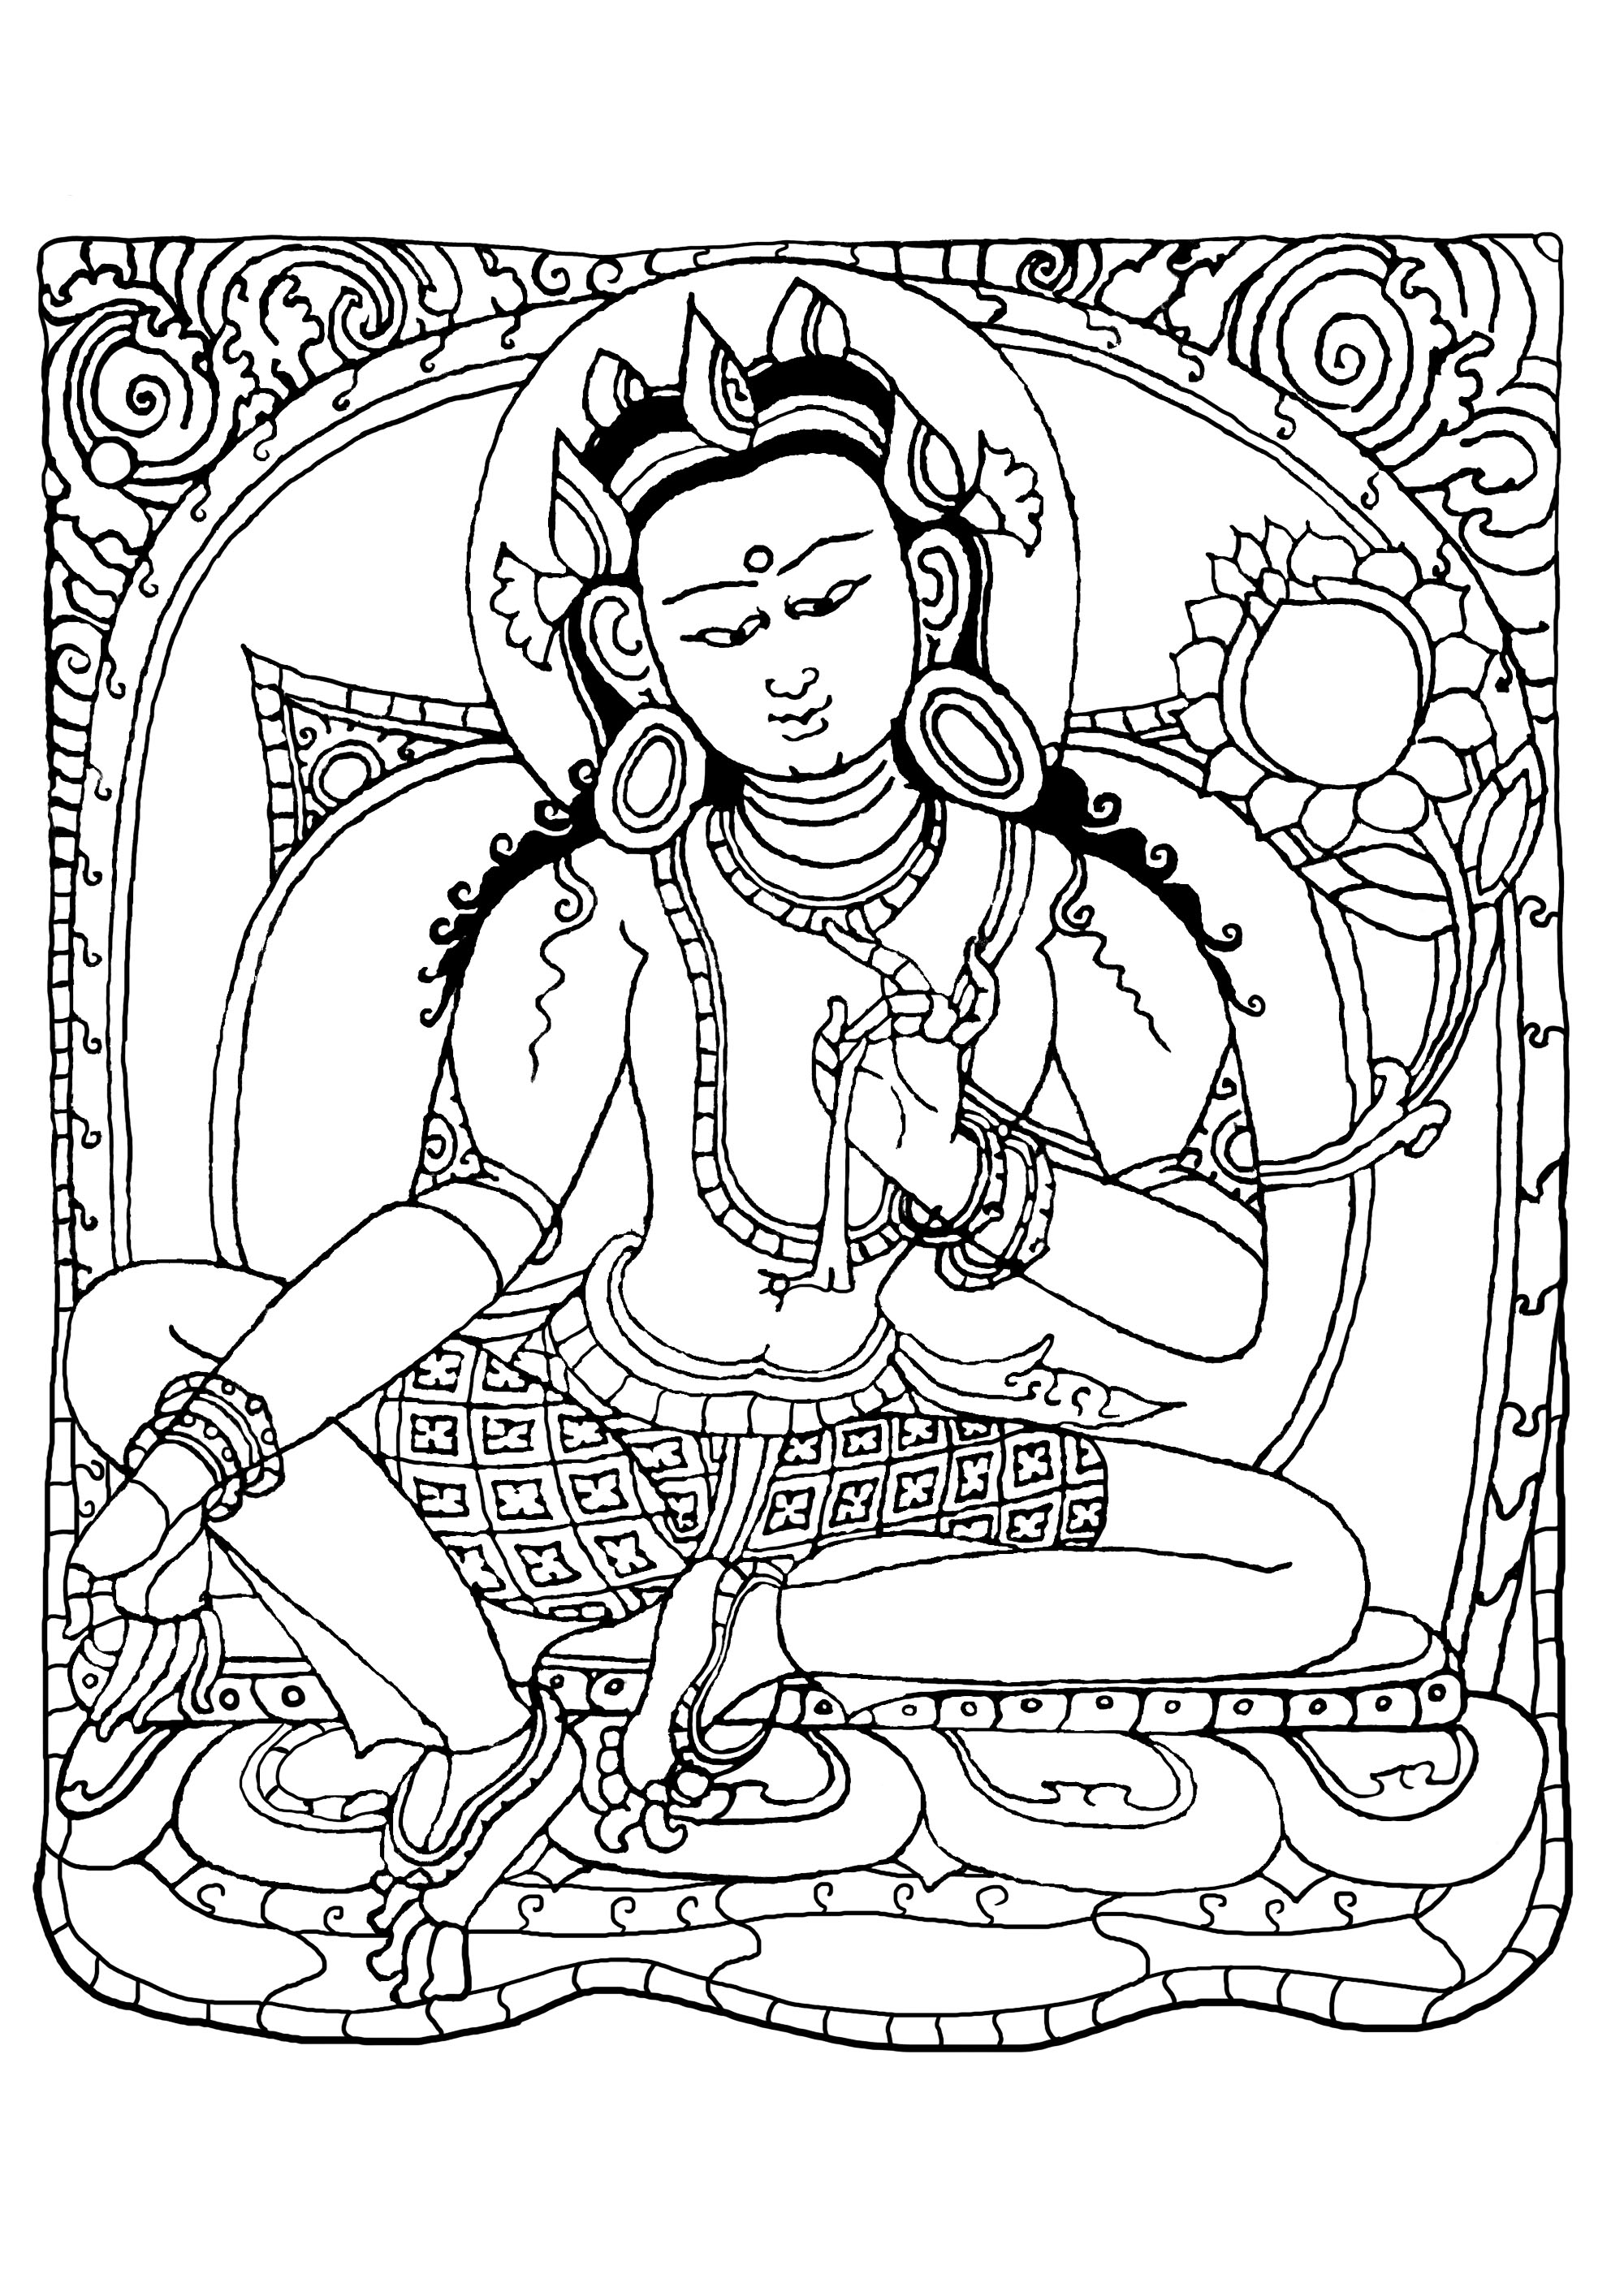 Coloring page inspired by a drawing (copper with gilding and paint) representing Buddha Shakyamuni. It was made by Nepalese craftsmen, between 1500 and 1600. It was possibly crafted and commissioned in Tibet.